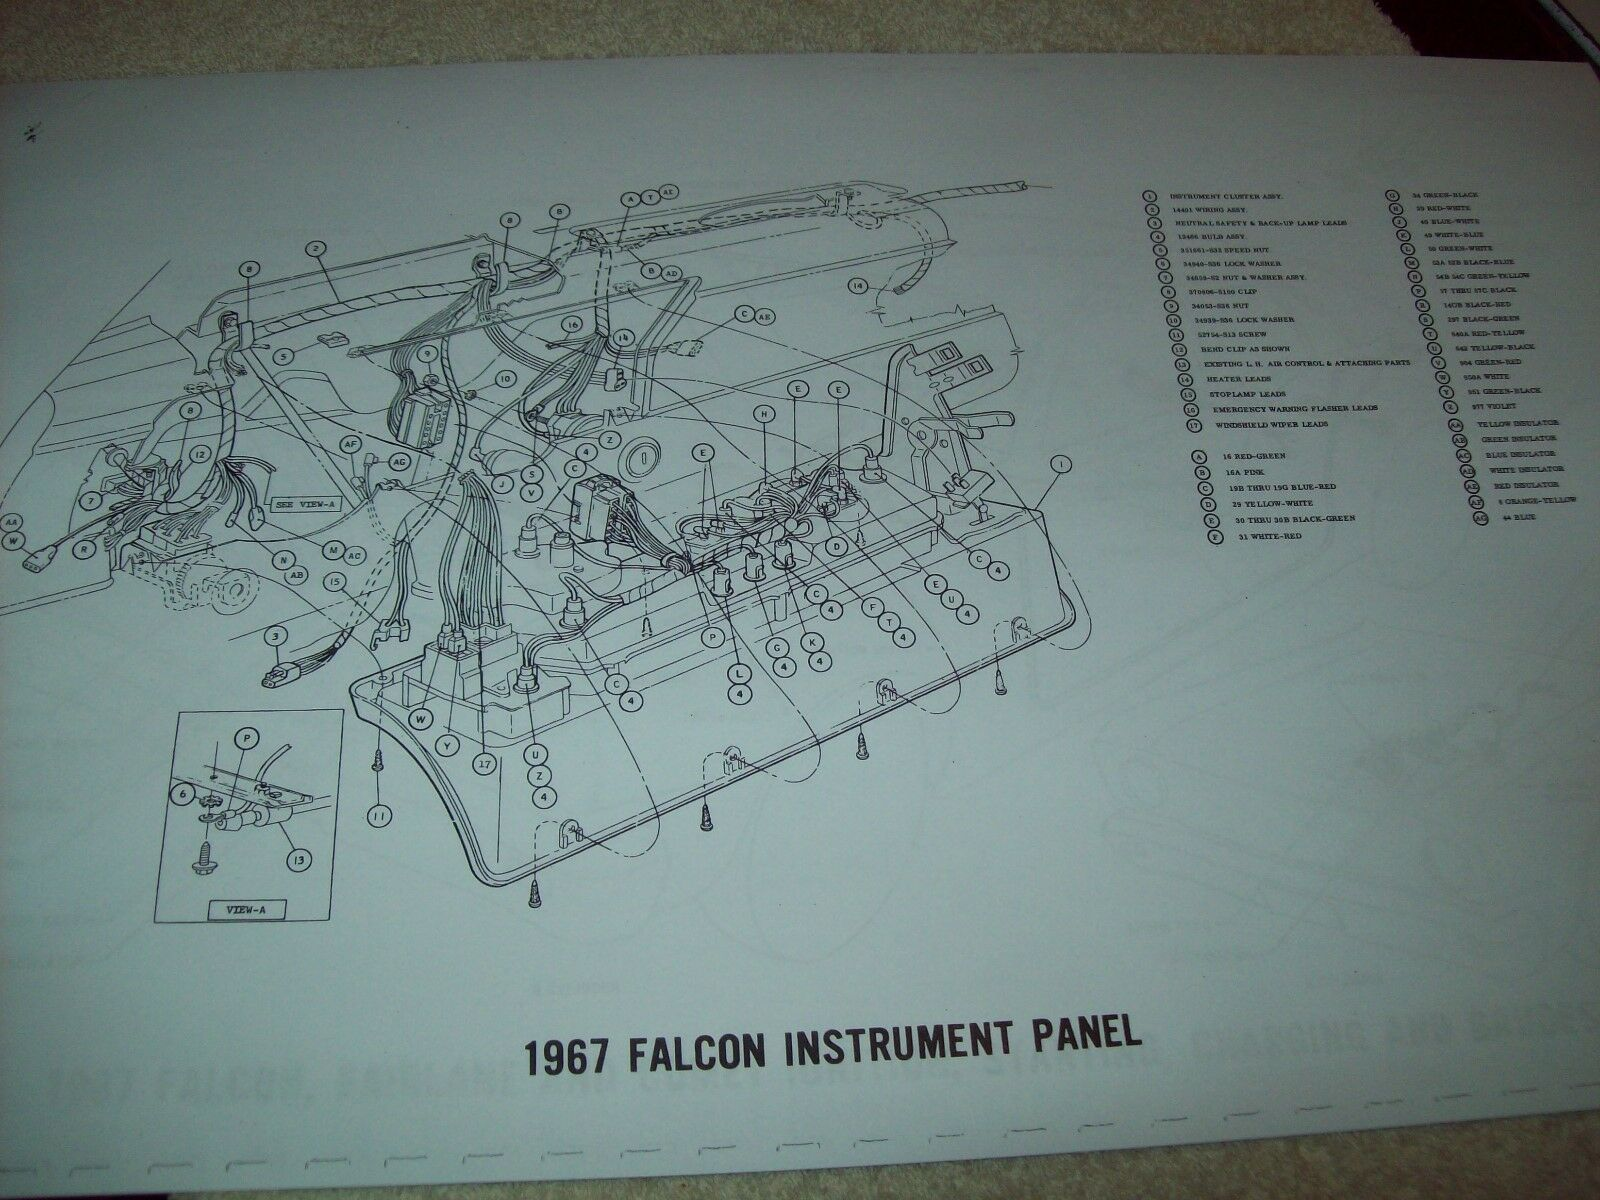 1967 Fairlane Wiring Diagram Enthusiast Diagrams Mustang Ford 11x17 17 Pages Gt 500 Xl Club Rh Picclick Com F100